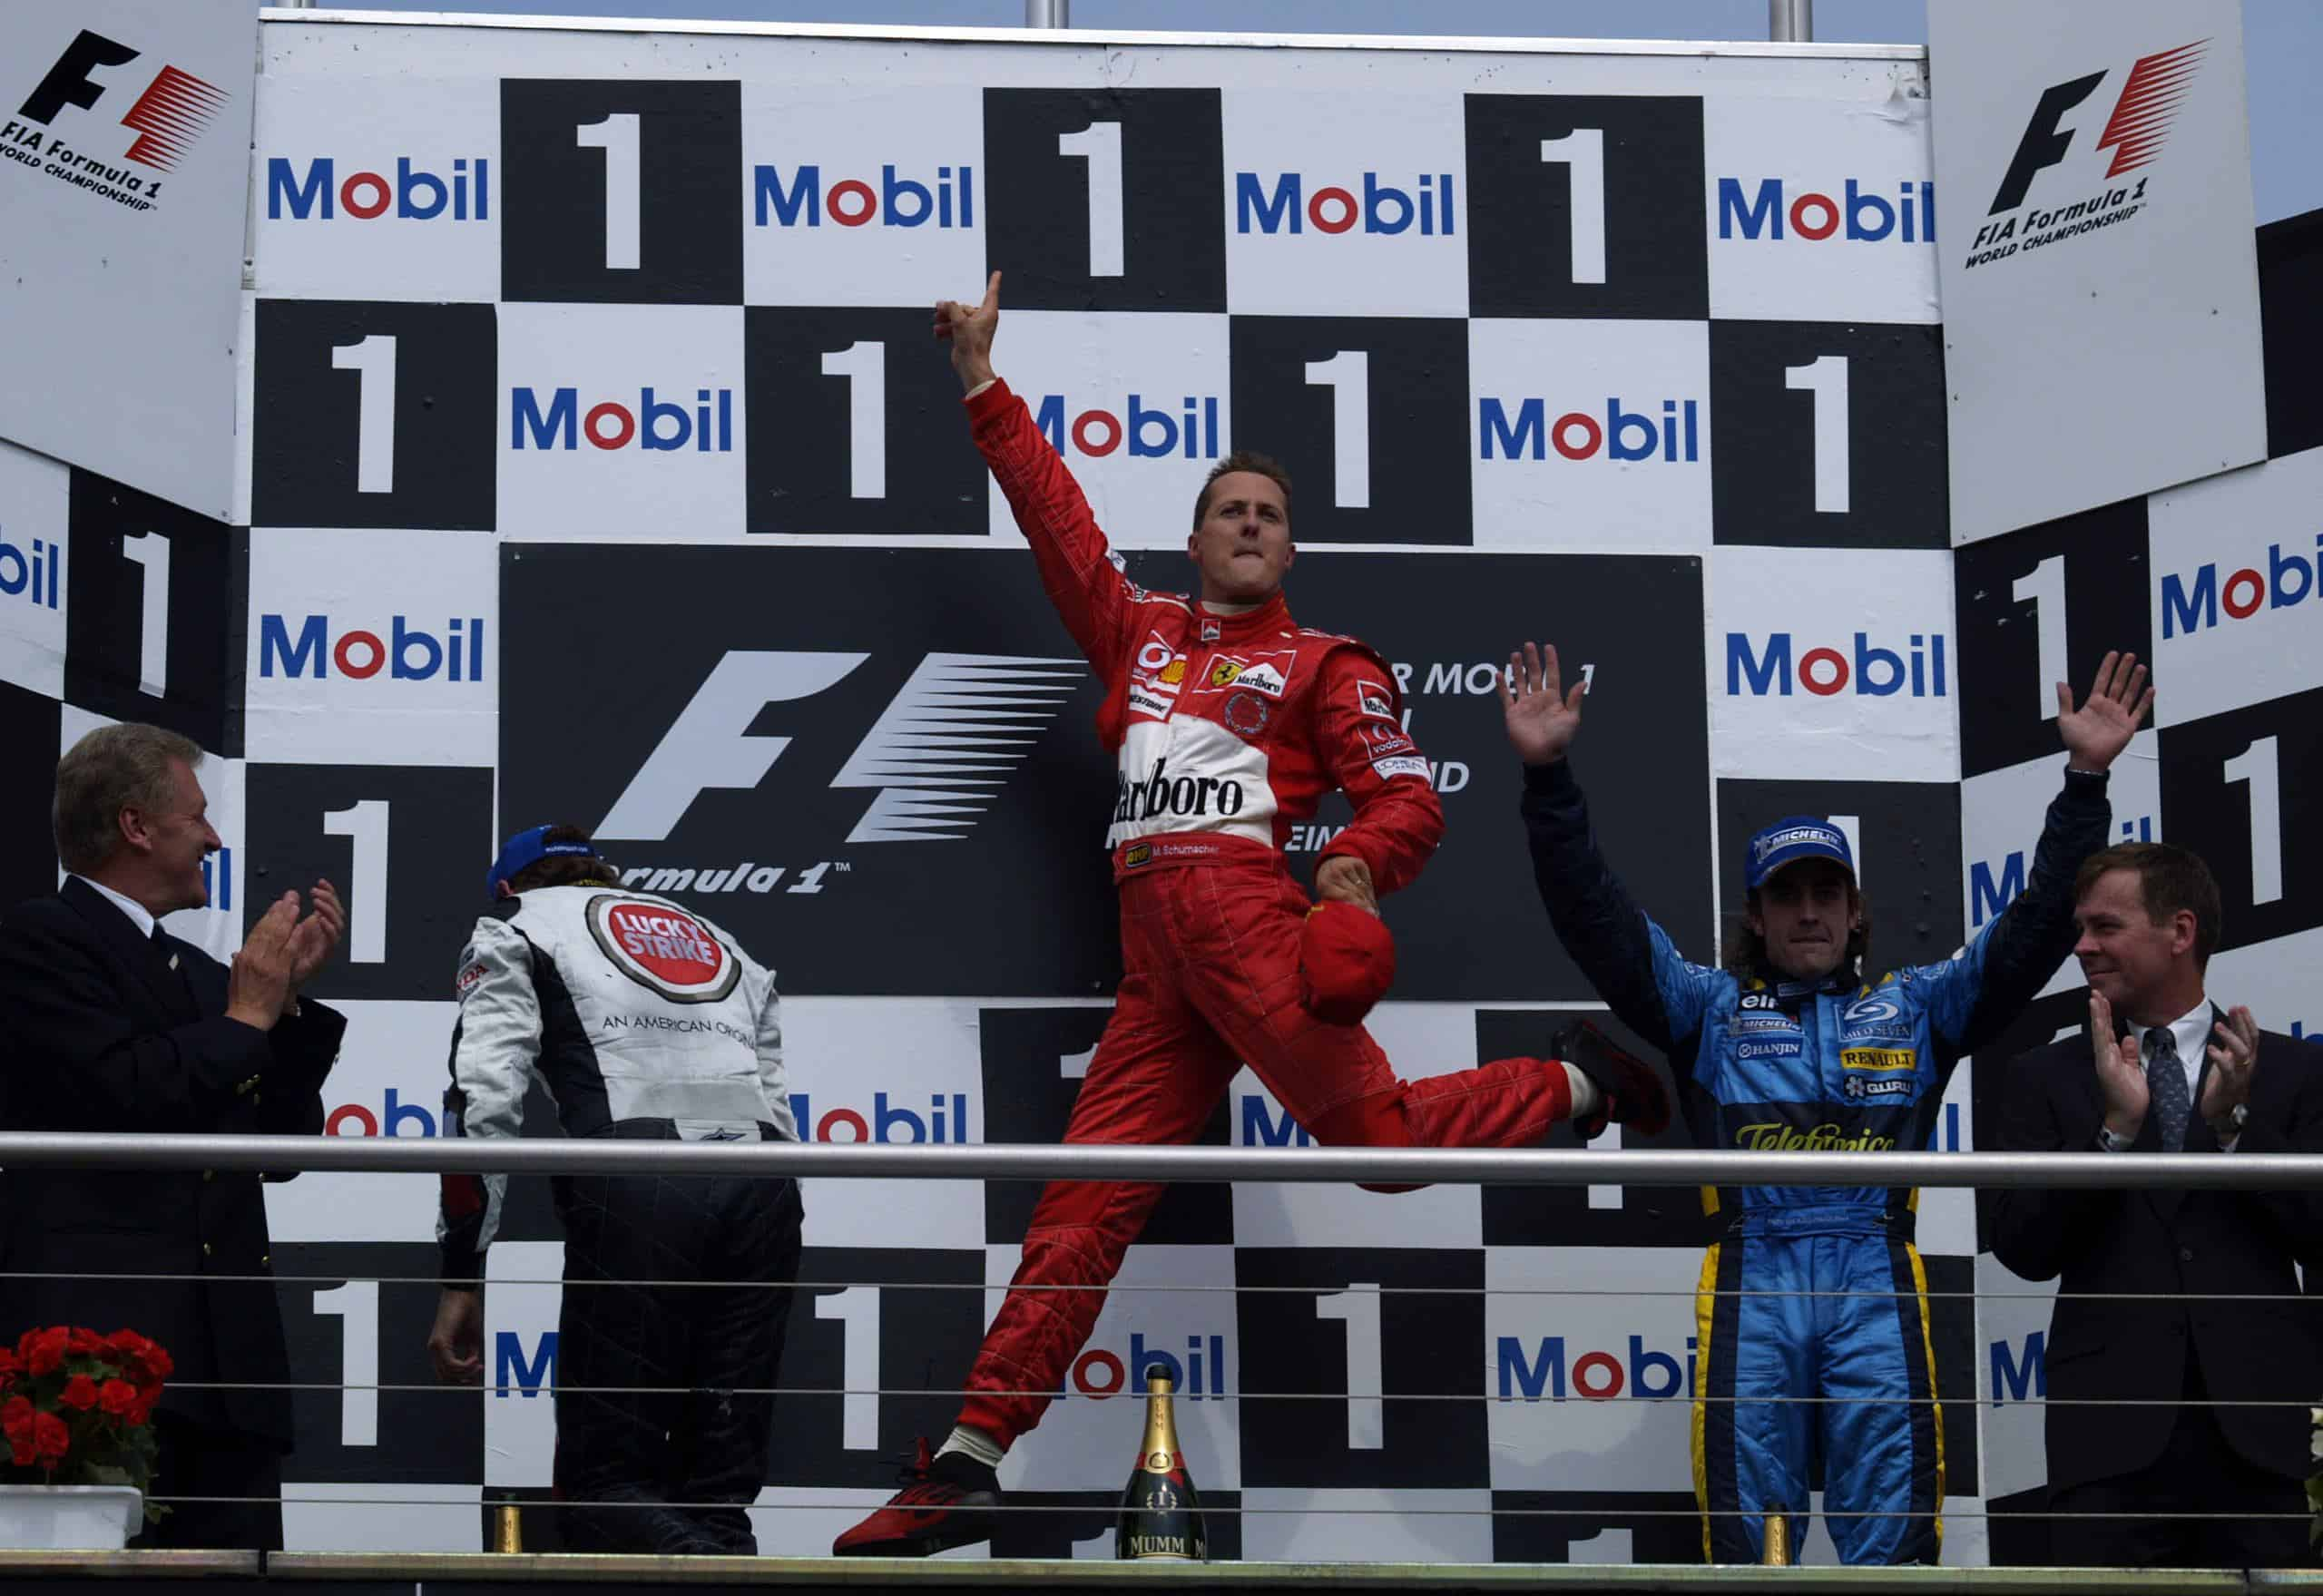 Michael-Schumacher-Ferrari-F2004-German-GP-F1-2004-on-the-podium-Hockenheim-Photo-Ferrari